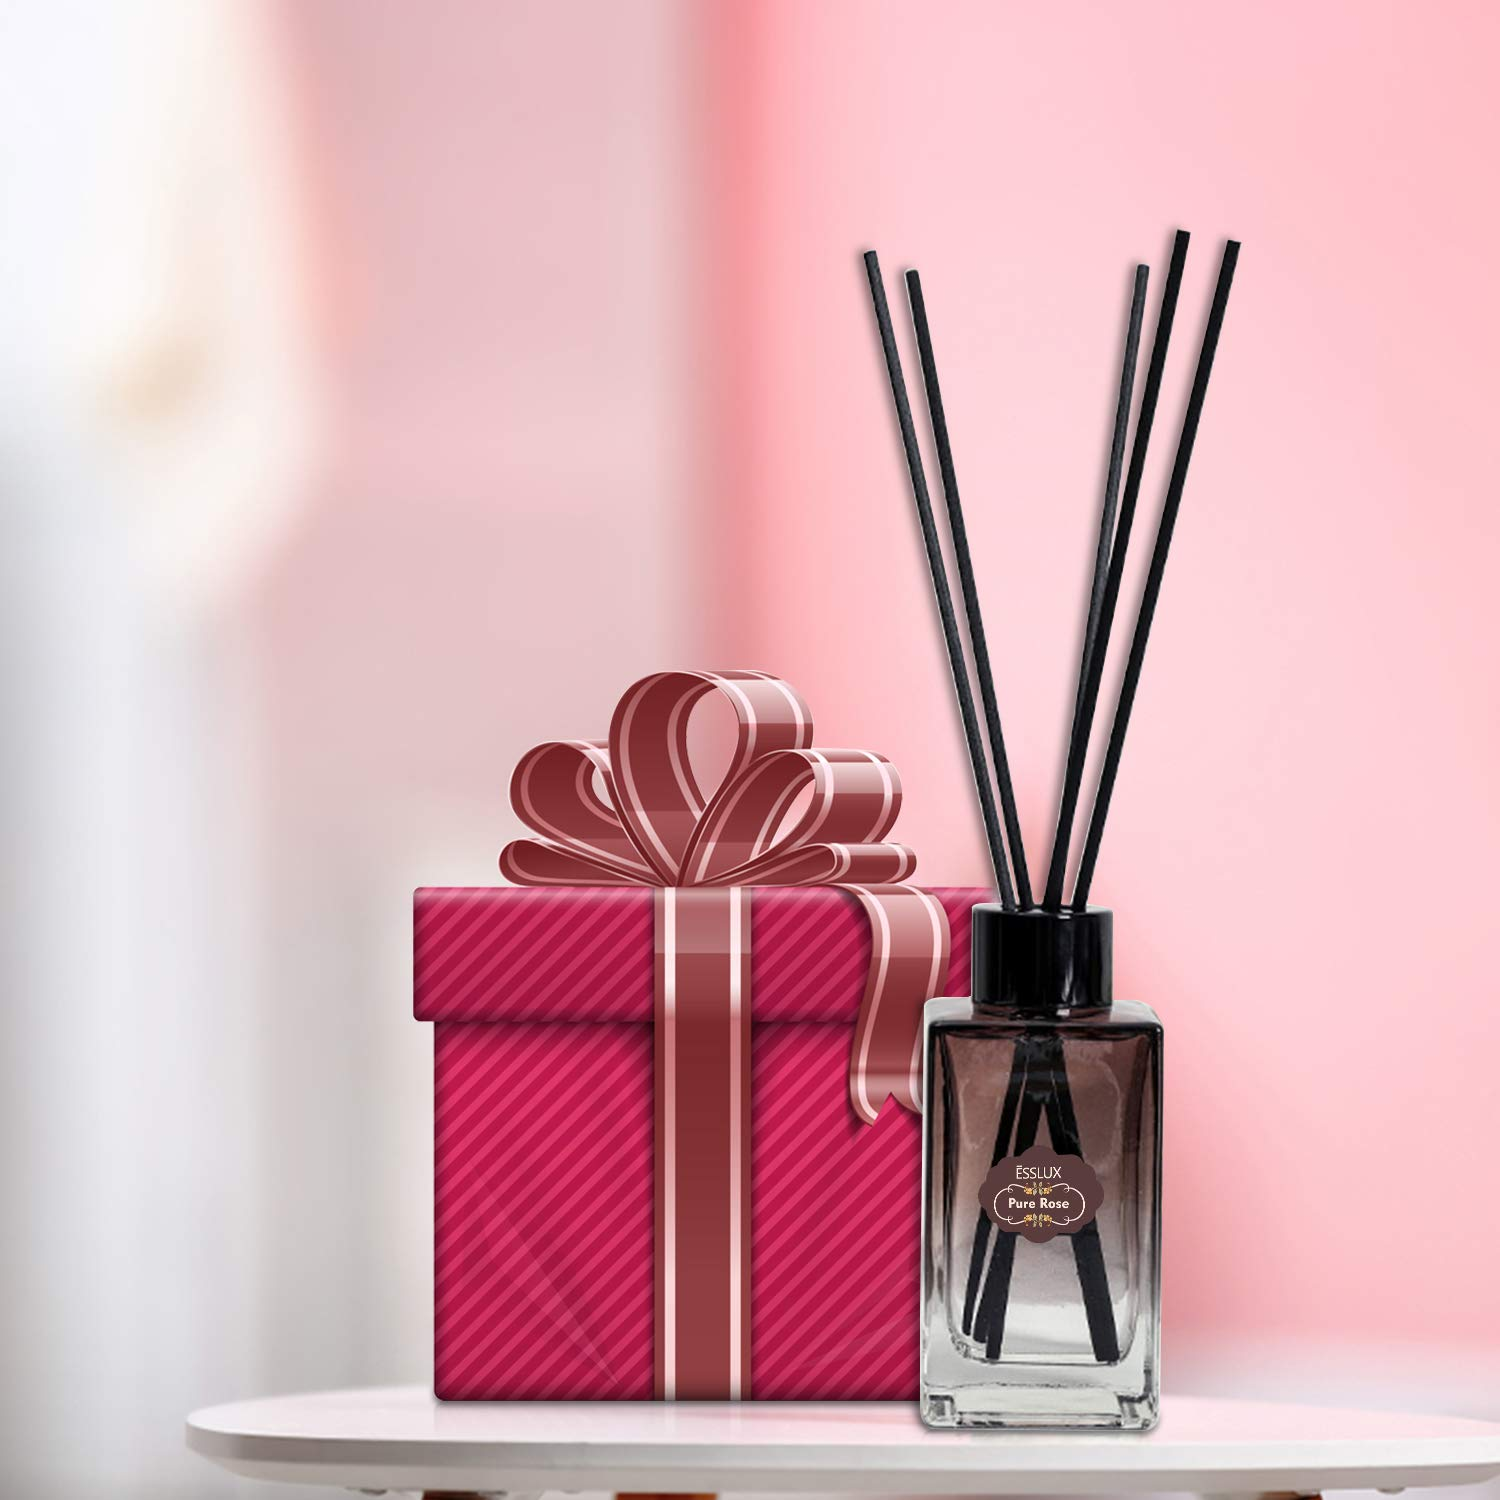 ESSLUX Scent Diffuser, Room Reed Diffuser Premium Quality for Home and Office, Air Freshener & Home Decor & Ideal Gift-Pure Rose by ESSLUX (Image #7)